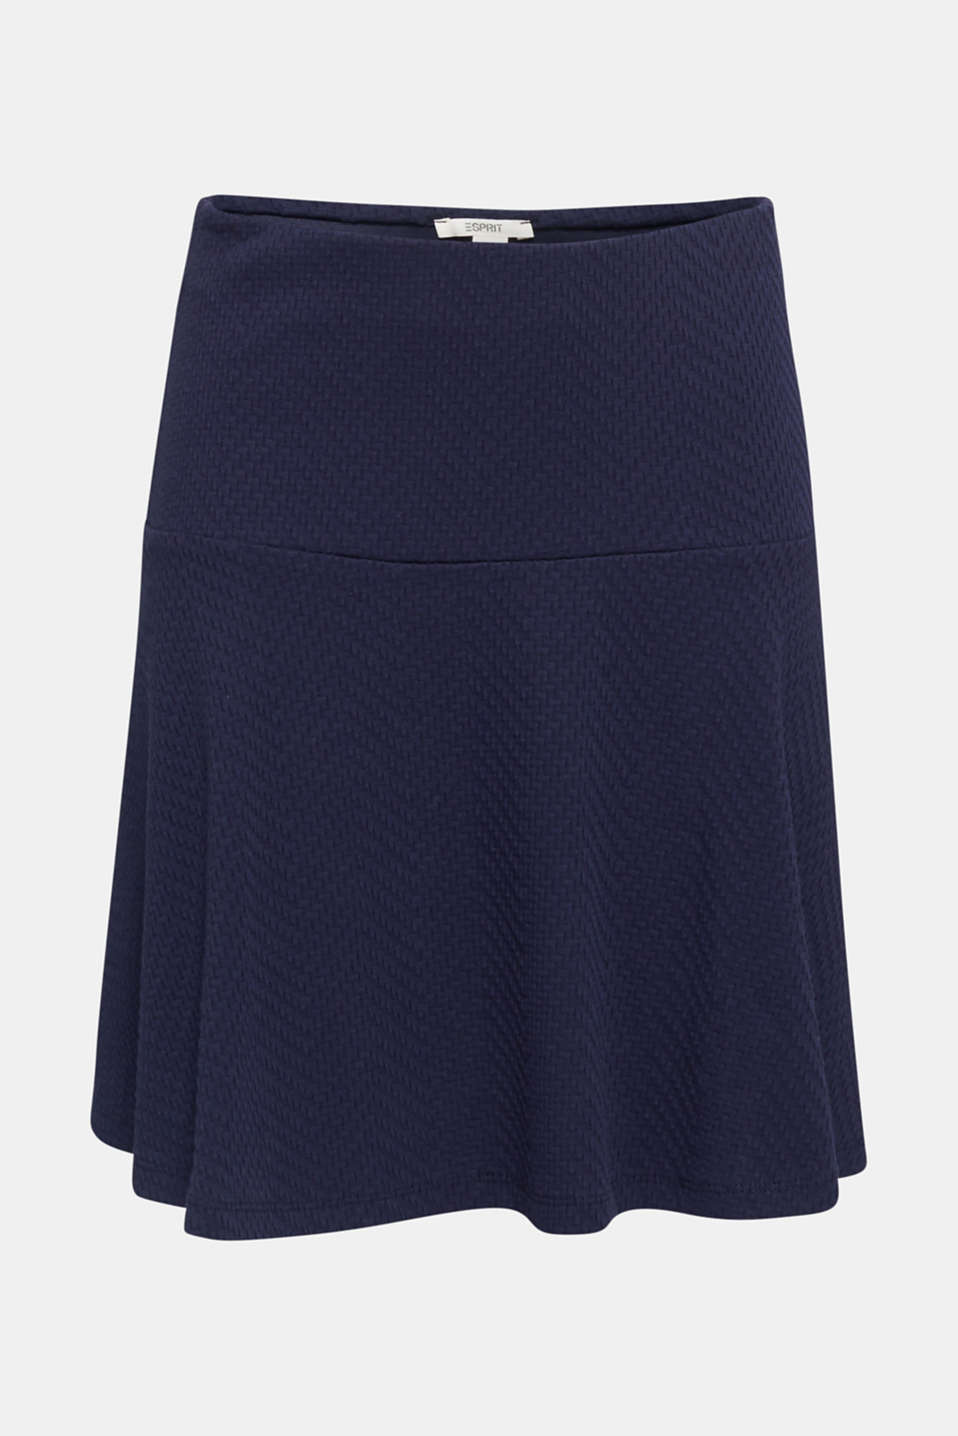 Jersey skirt made of 100% cotton, NAVY, detail image number 6